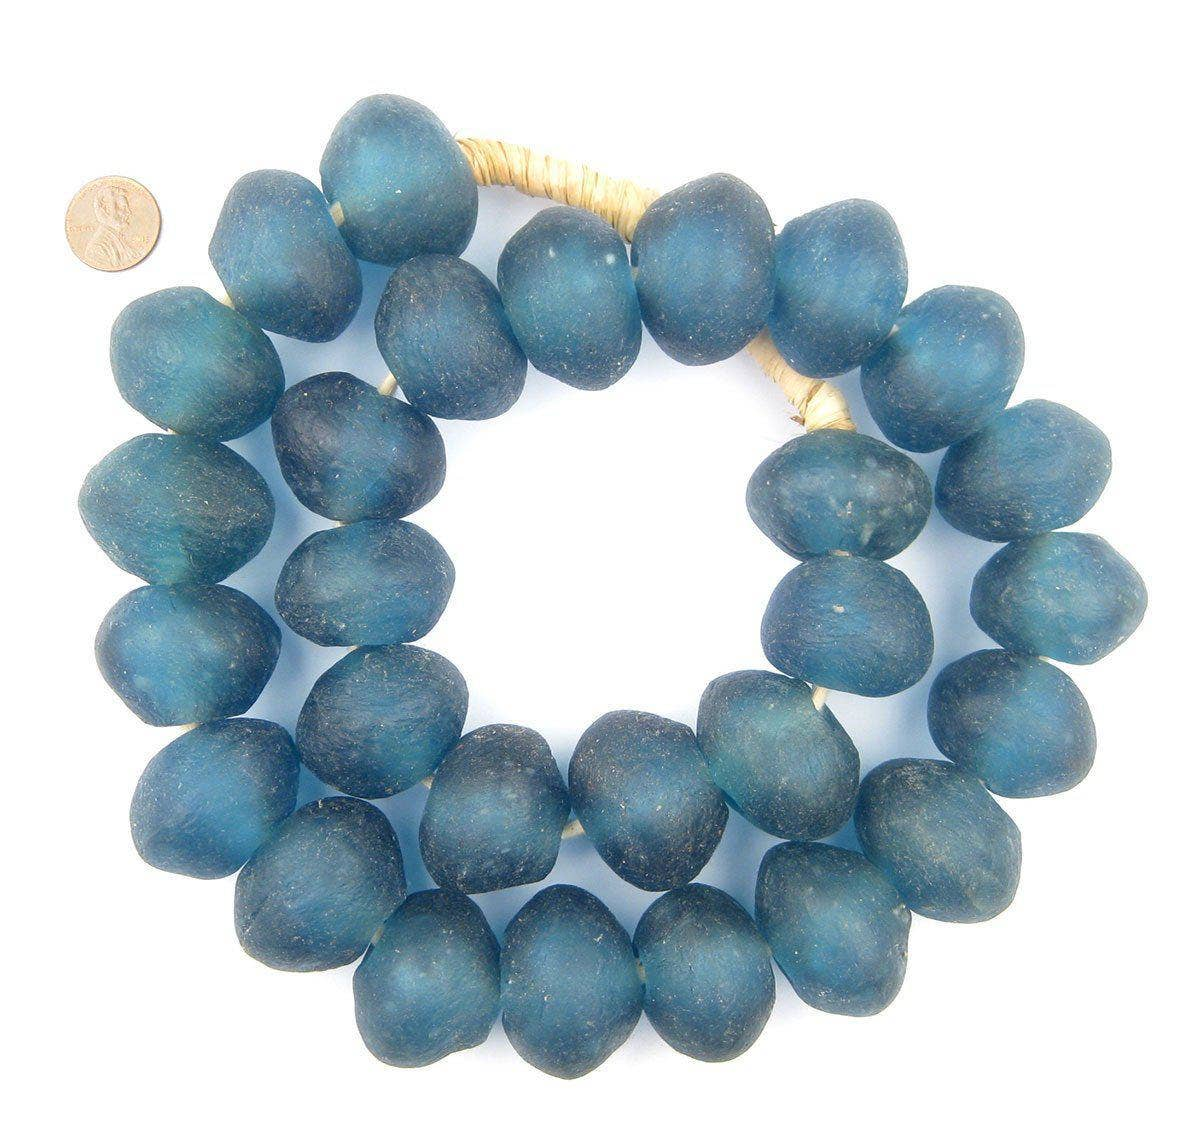 The Bead Chest - 33mm Super Jumbo Light Blue Recycled Glass Beads